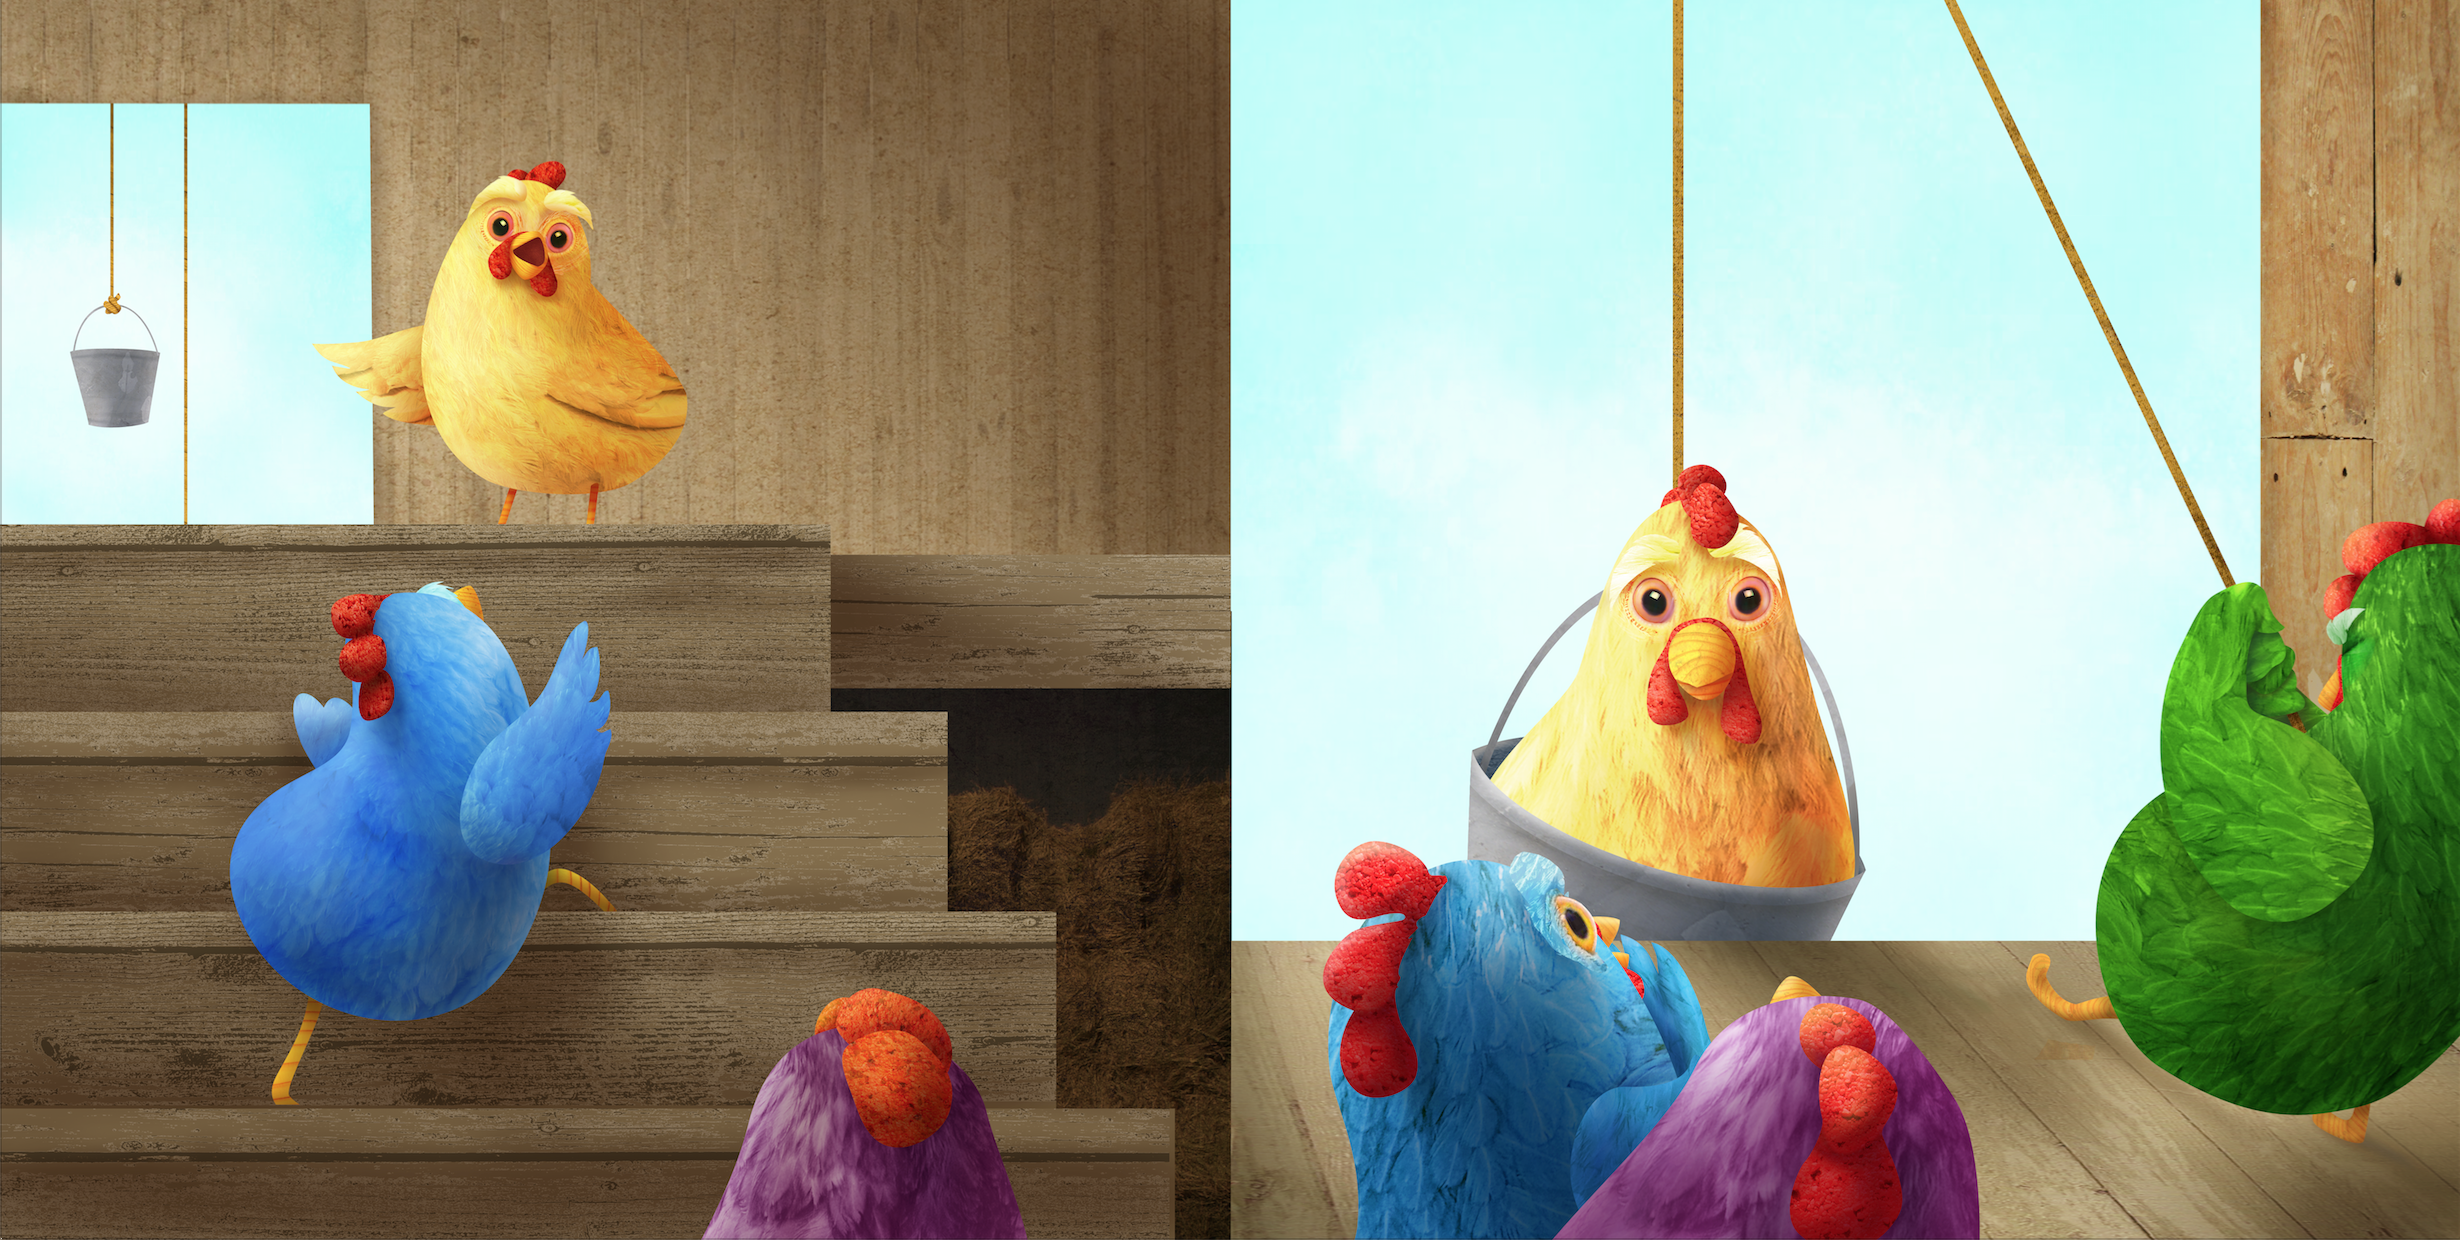 The chickens are setting their plan into motion, but what are they going to discover out there?